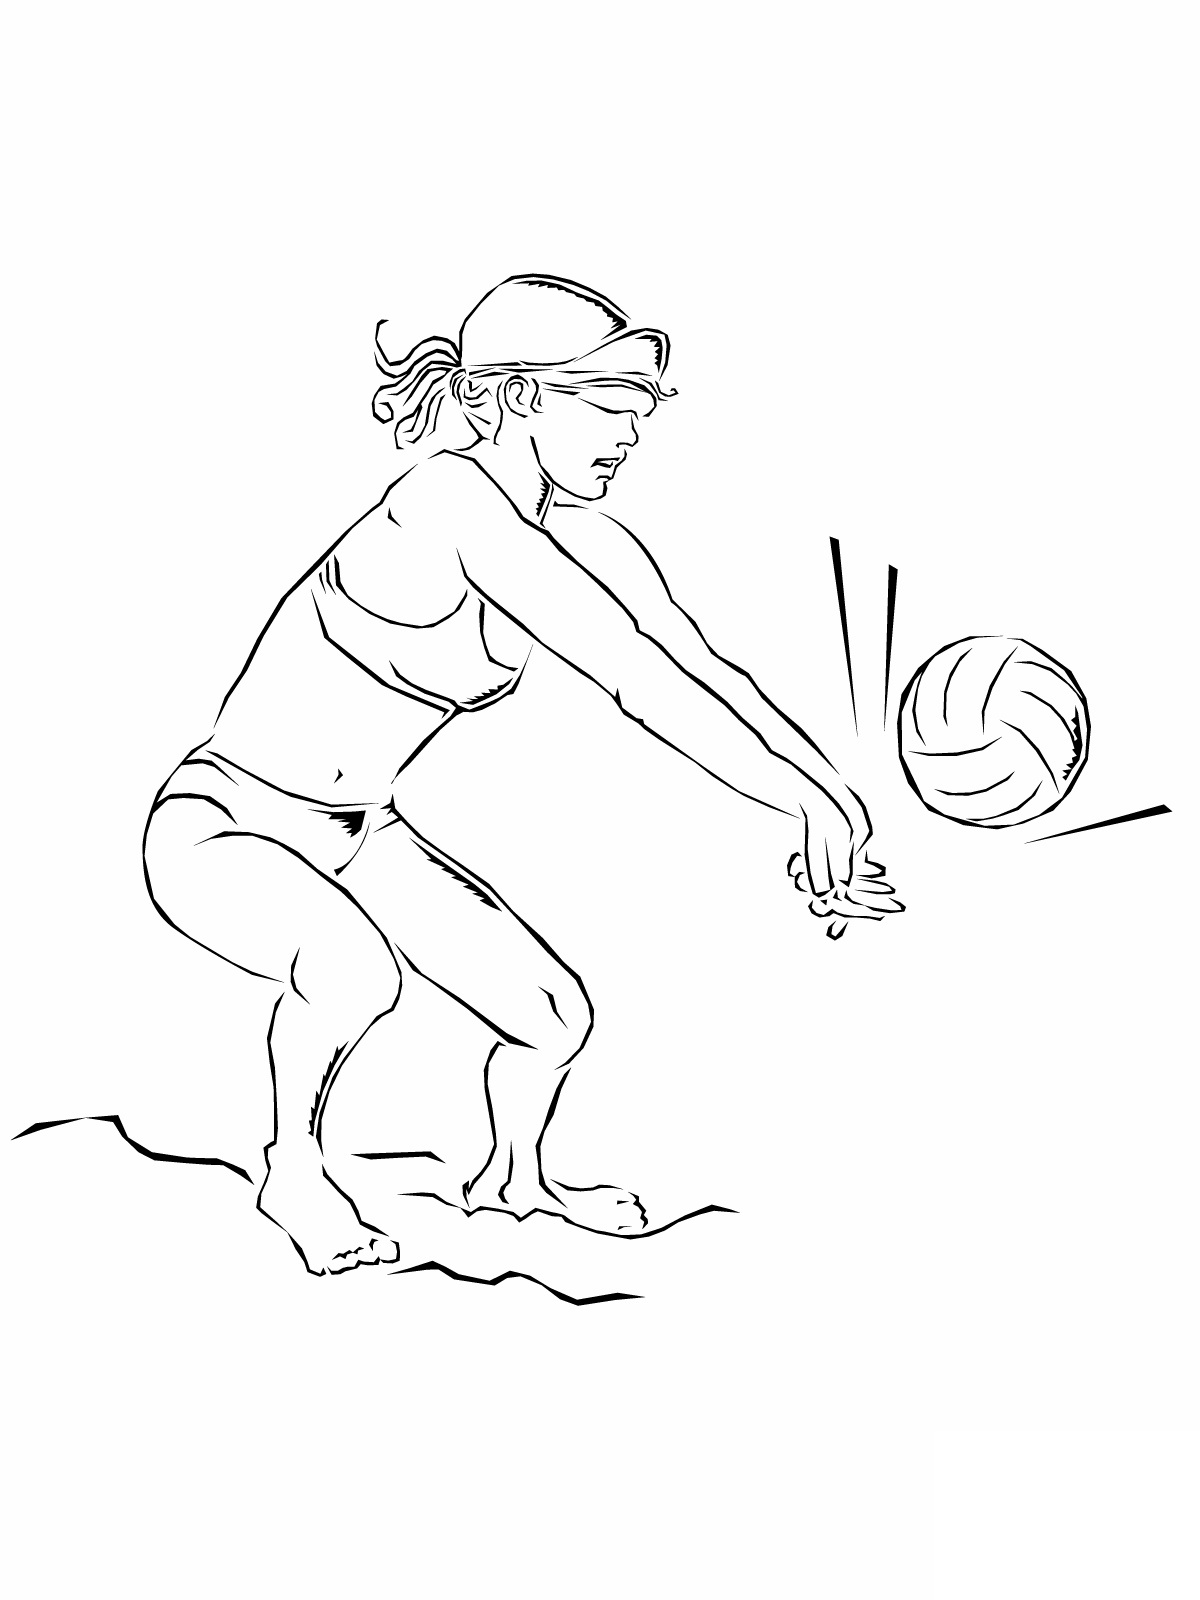 volleyball coloring pages printable volleyball coloring pages free download on clipartmag printable coloring pages volleyball